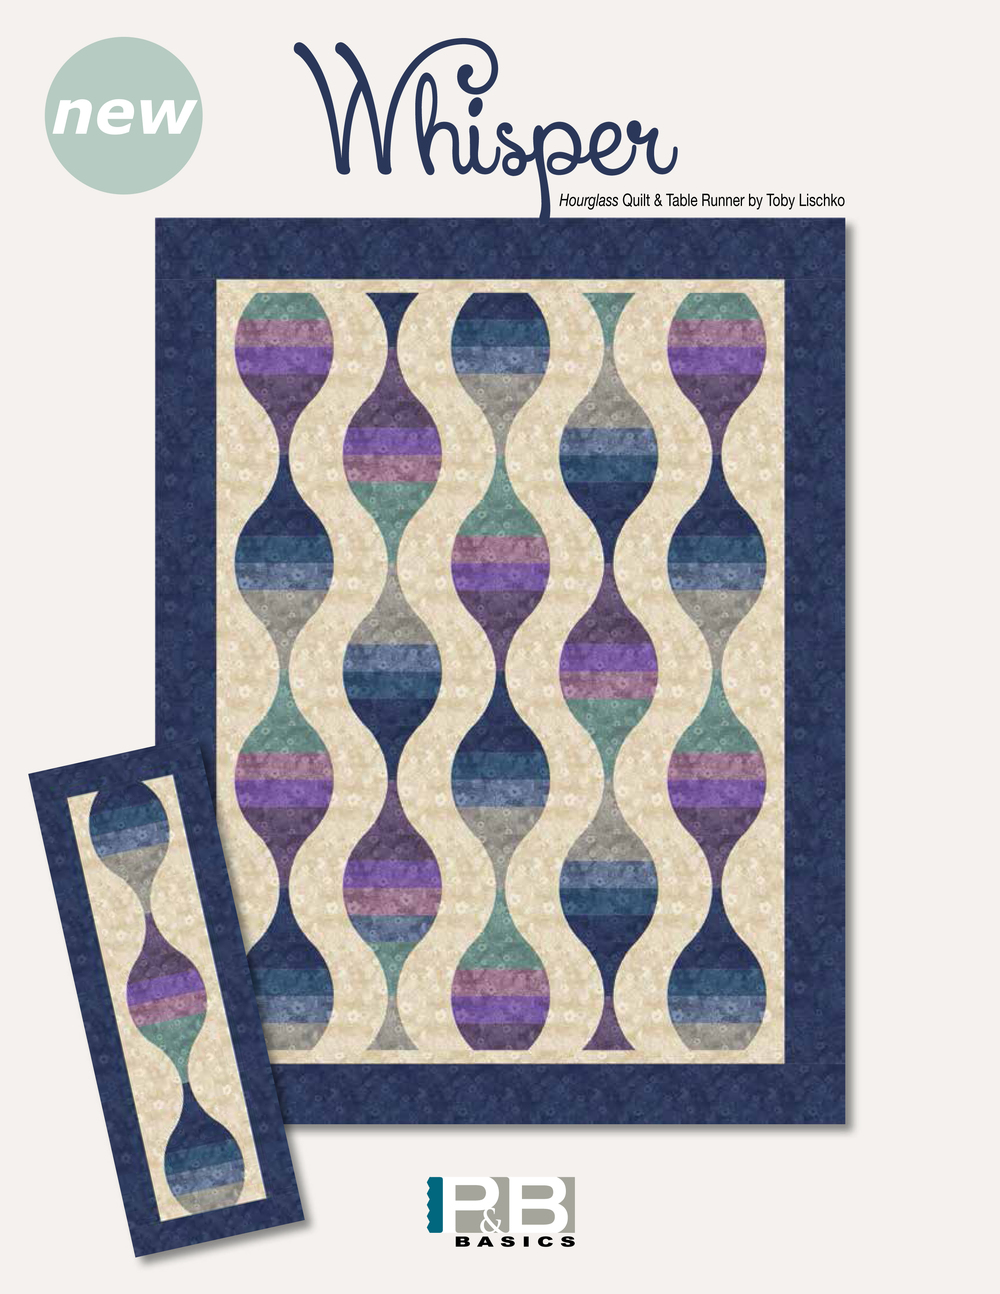 Hourglass Quilt & Table Runner by: Toby Lischko Whisper